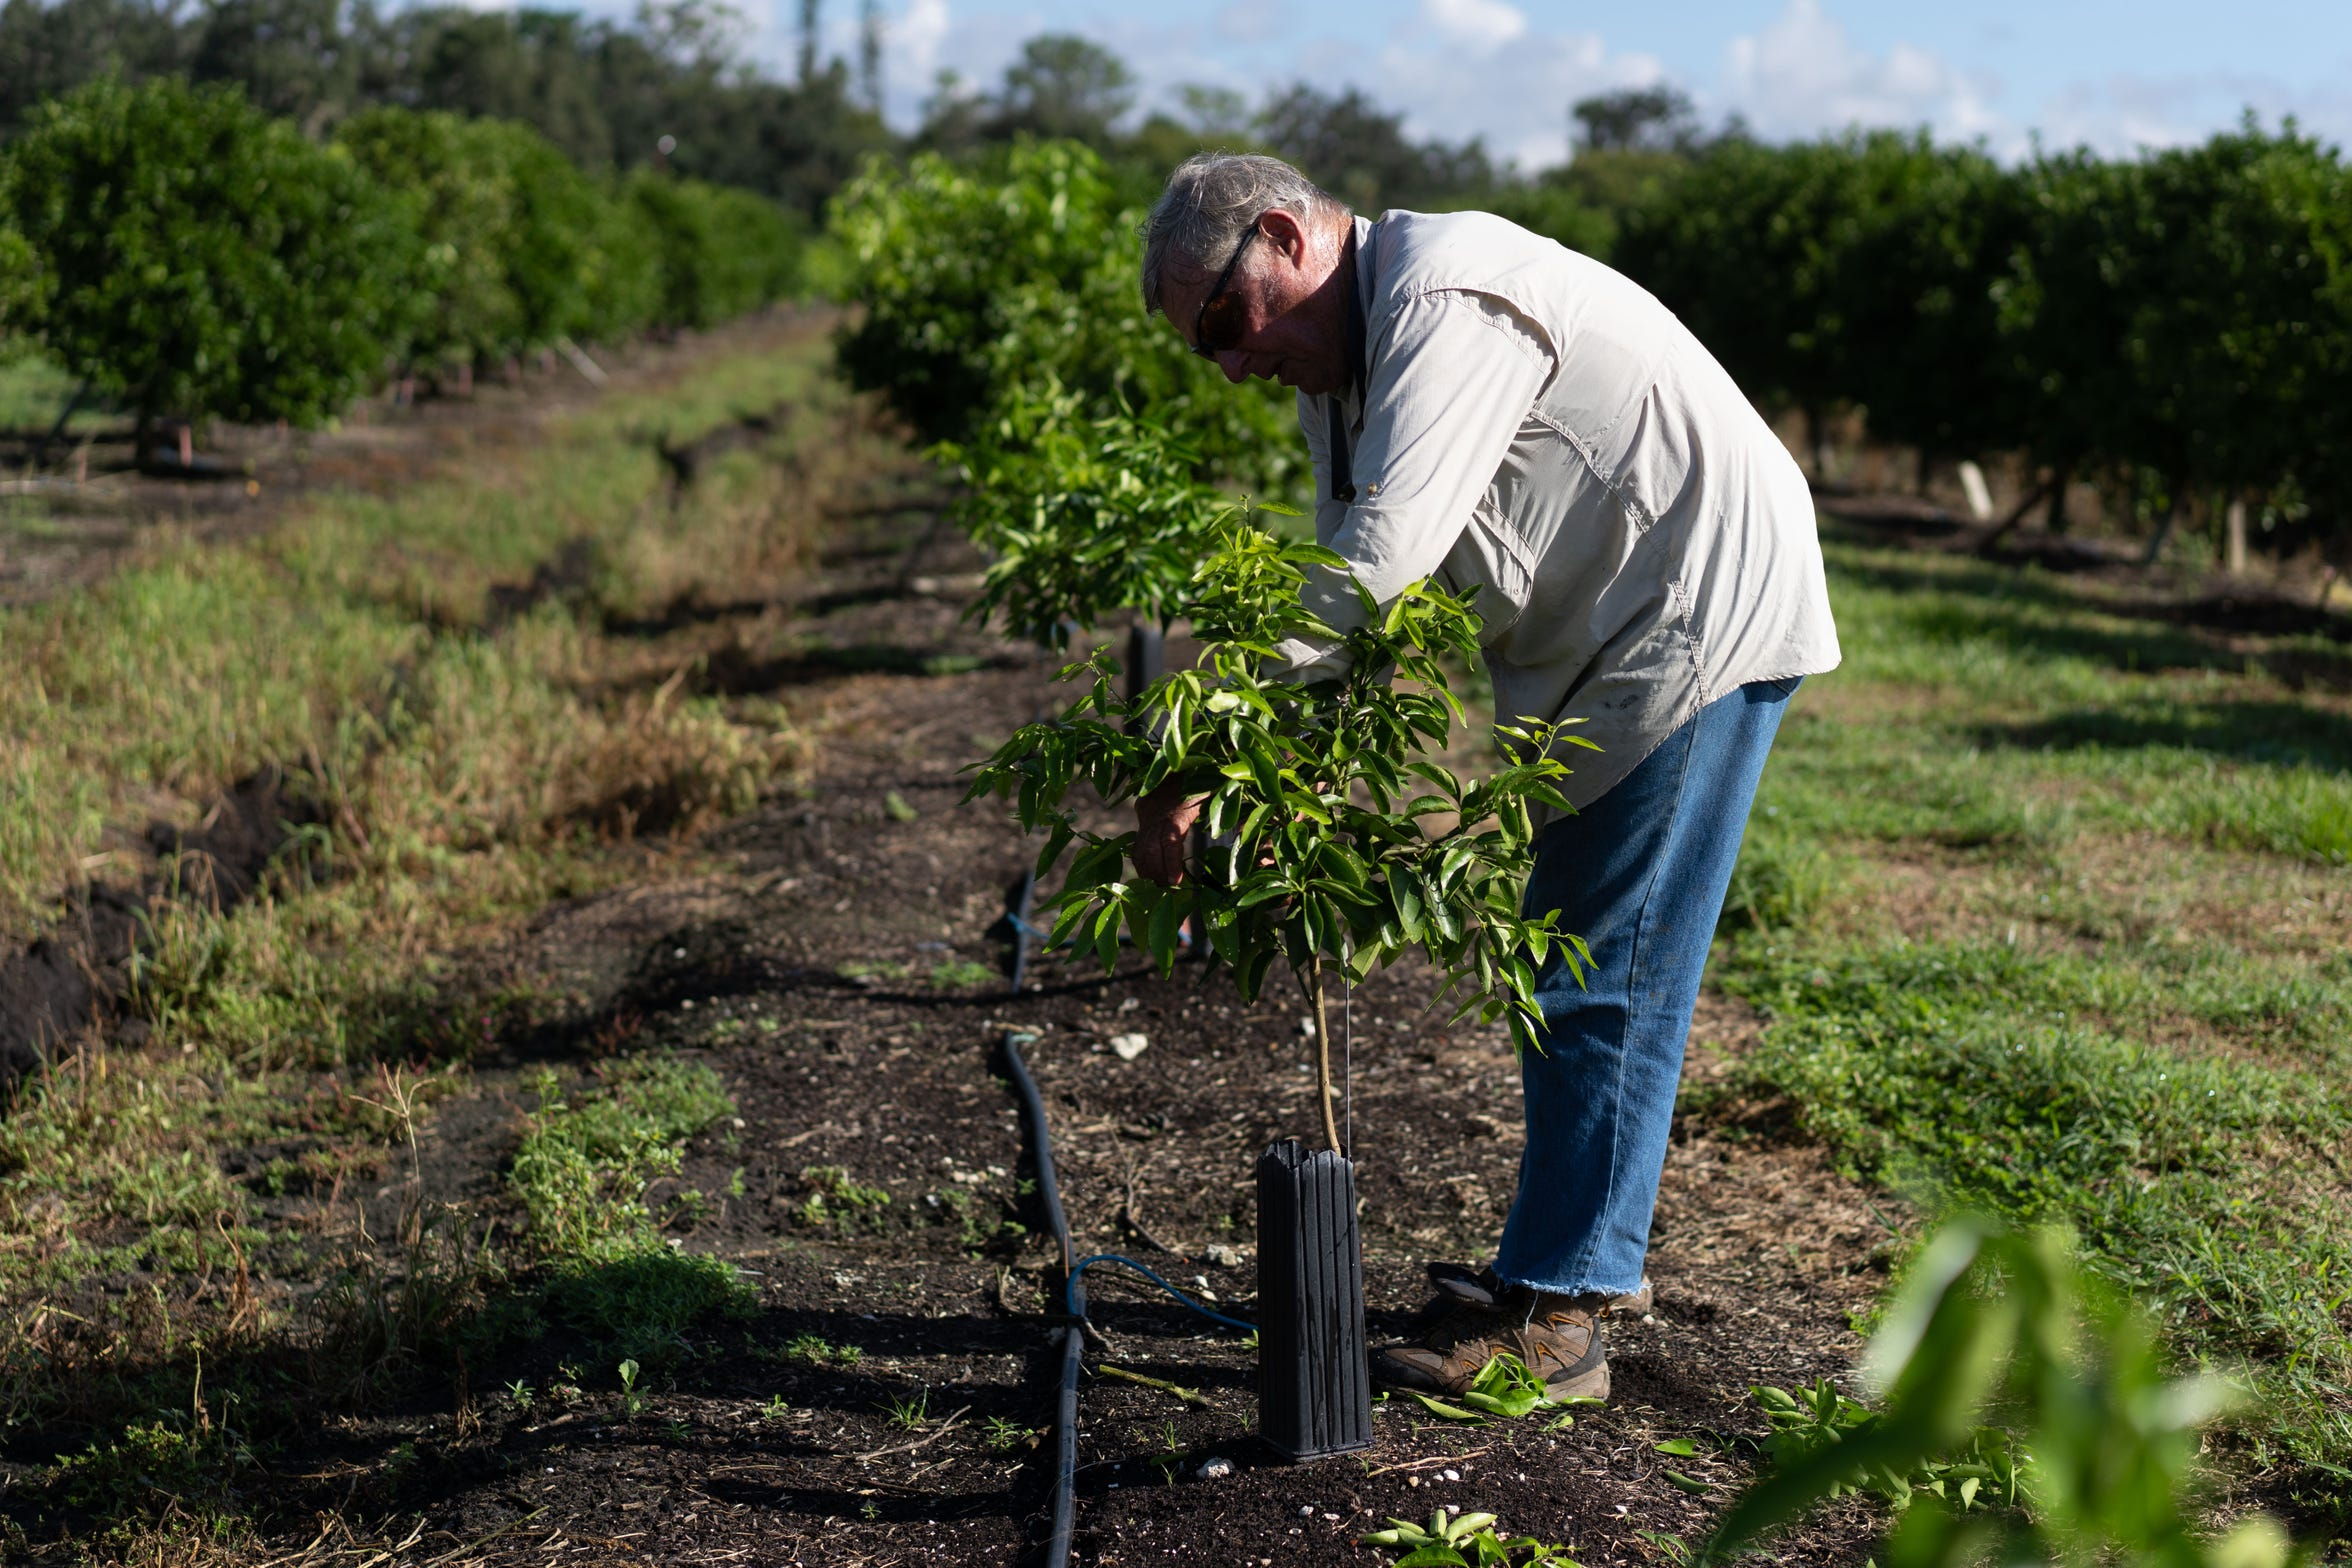 Martin Mason, 75, the owner of Tropical Oaks Farms in LaBelle, tends to his young Sugar Belle tangerine saplings Tuesday, Sept.13, 2018, to groom them into a round shape as they grow and bear fruits. When Hurricane Irma made landfall in Florida on Sept. 10, 2017, the eye swept through Mason's property, damaging his trees and harvest. A year latern, he is still trying to recover from the losses.